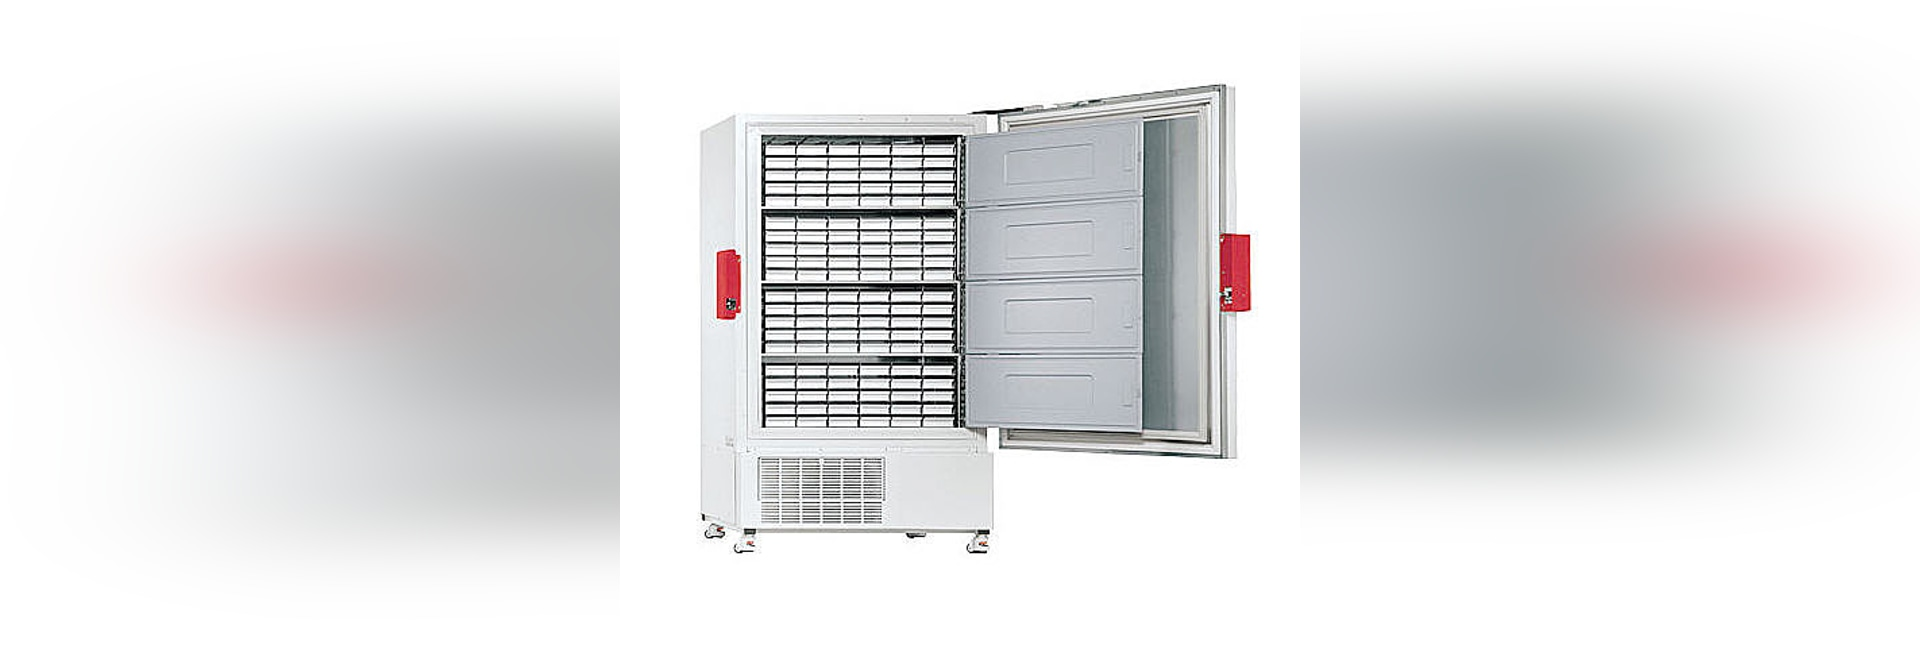 Ultra low temperature freezers: BINDER extends the warranty to five years, free of charge